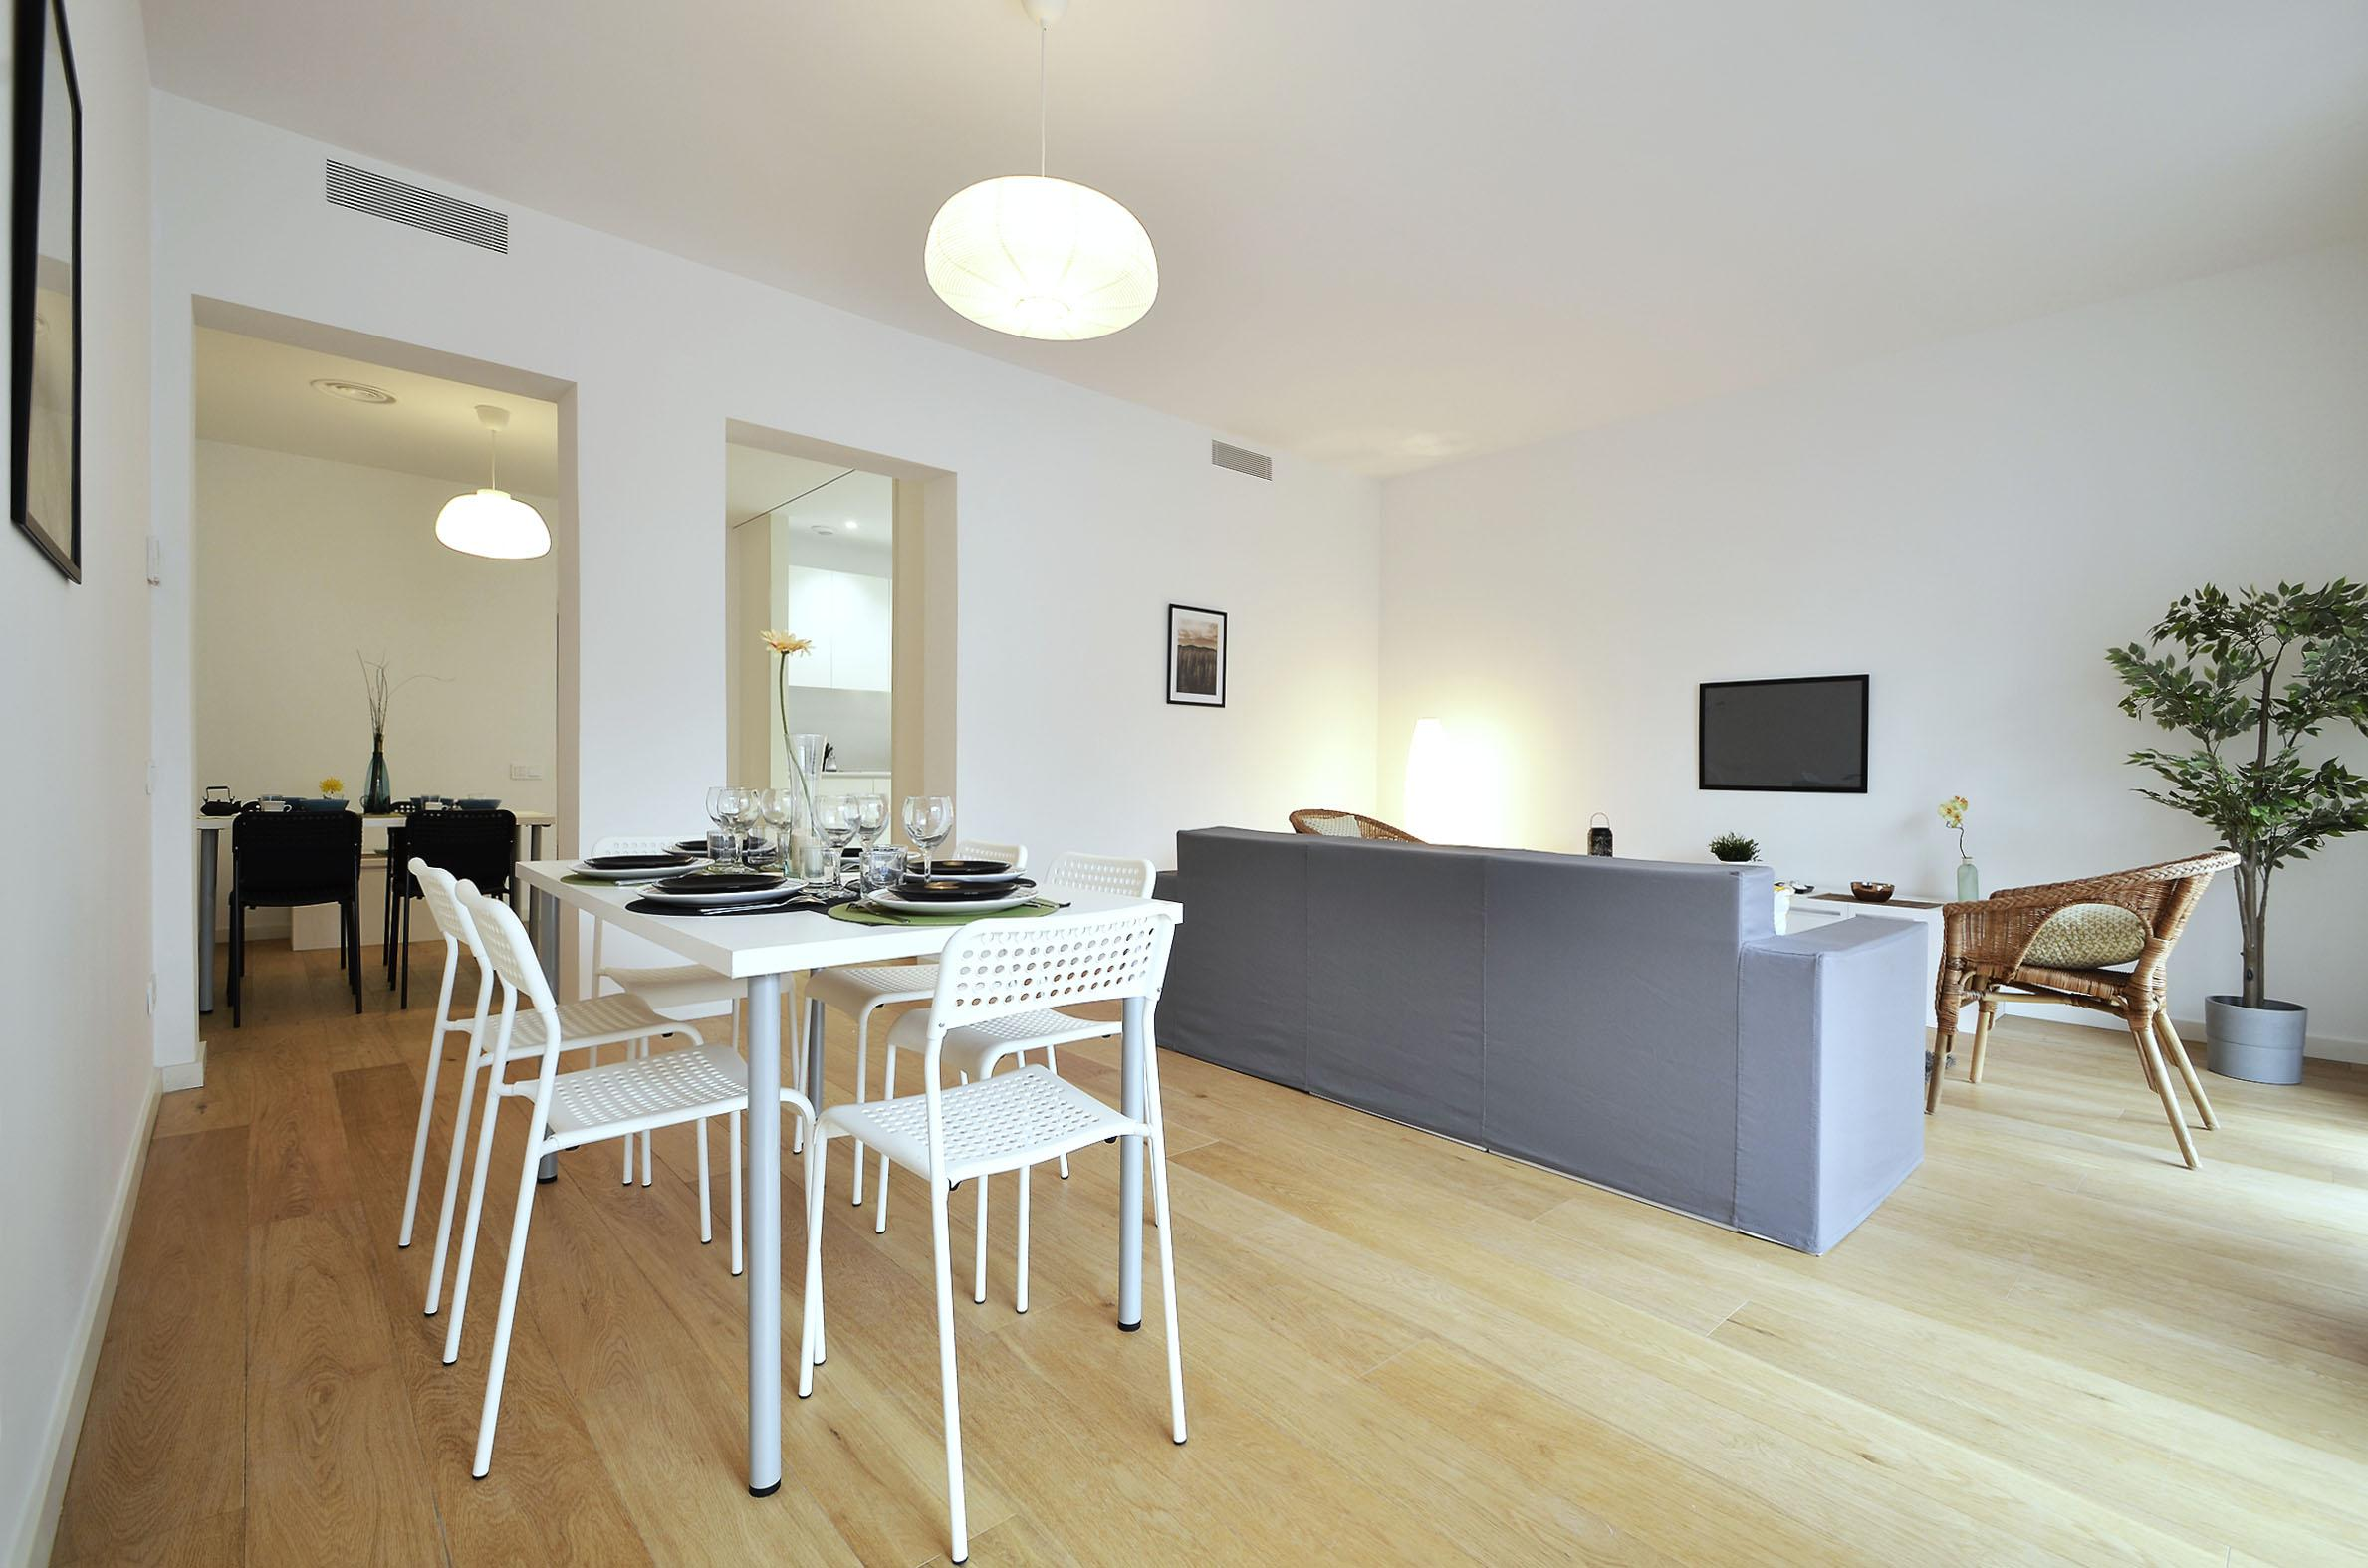 173872 Apartment for sale in Eixample, Old Left Eixample 1